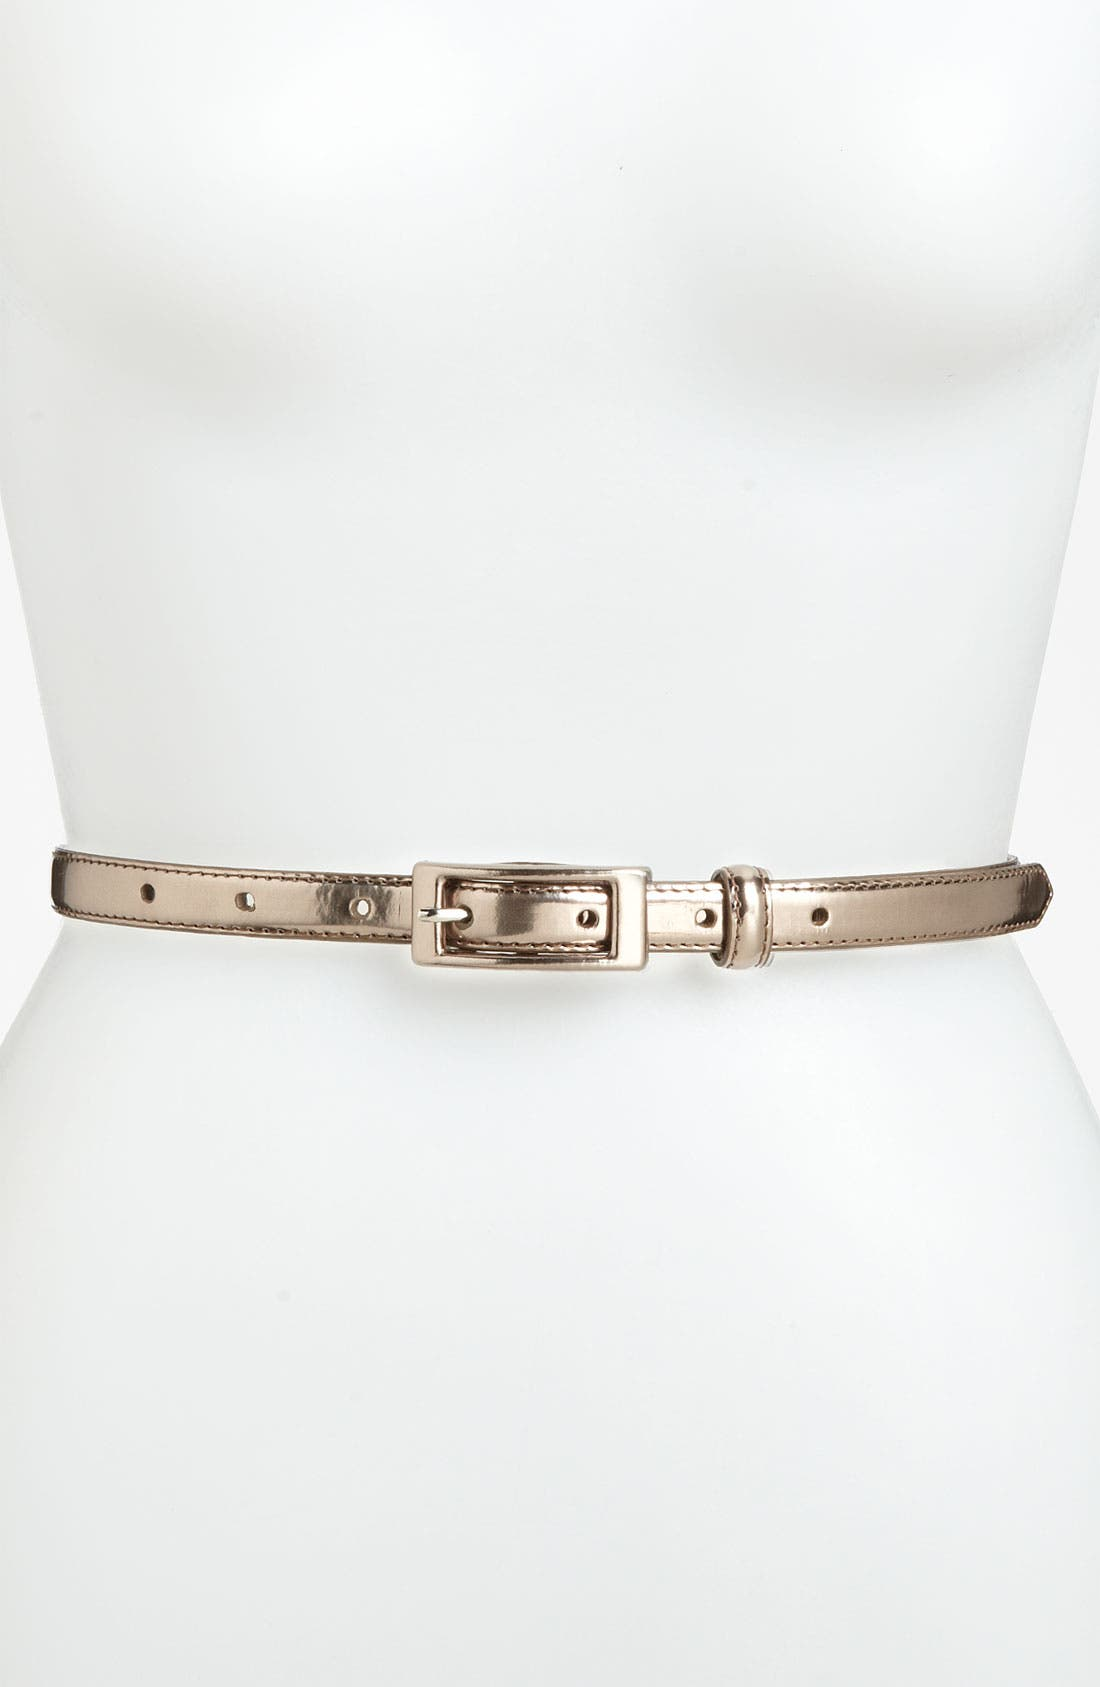 Main Image - Another Line Skinny Belt